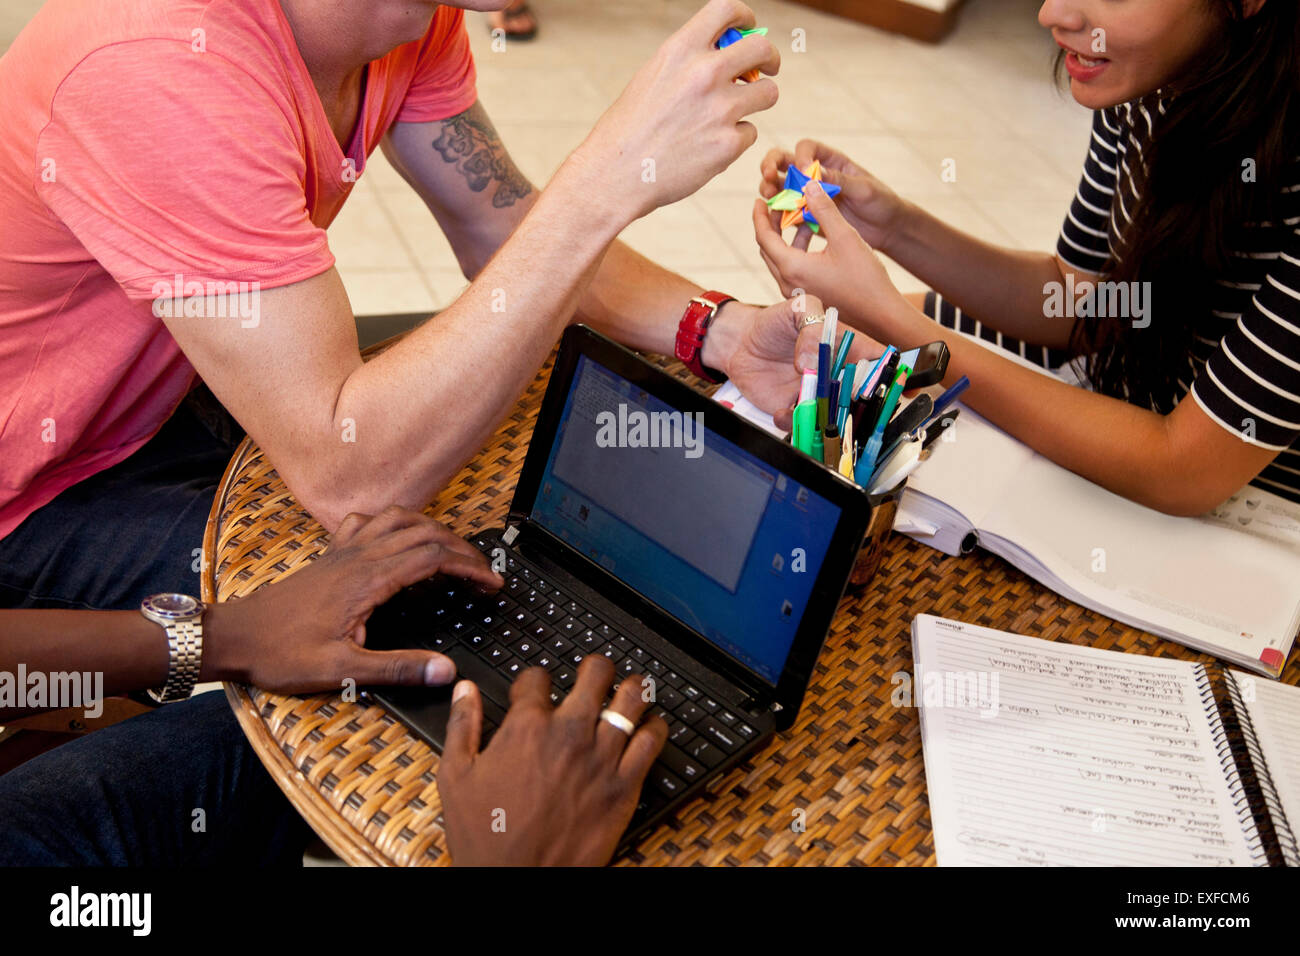 Students using laptop and relaxing - Stock Image